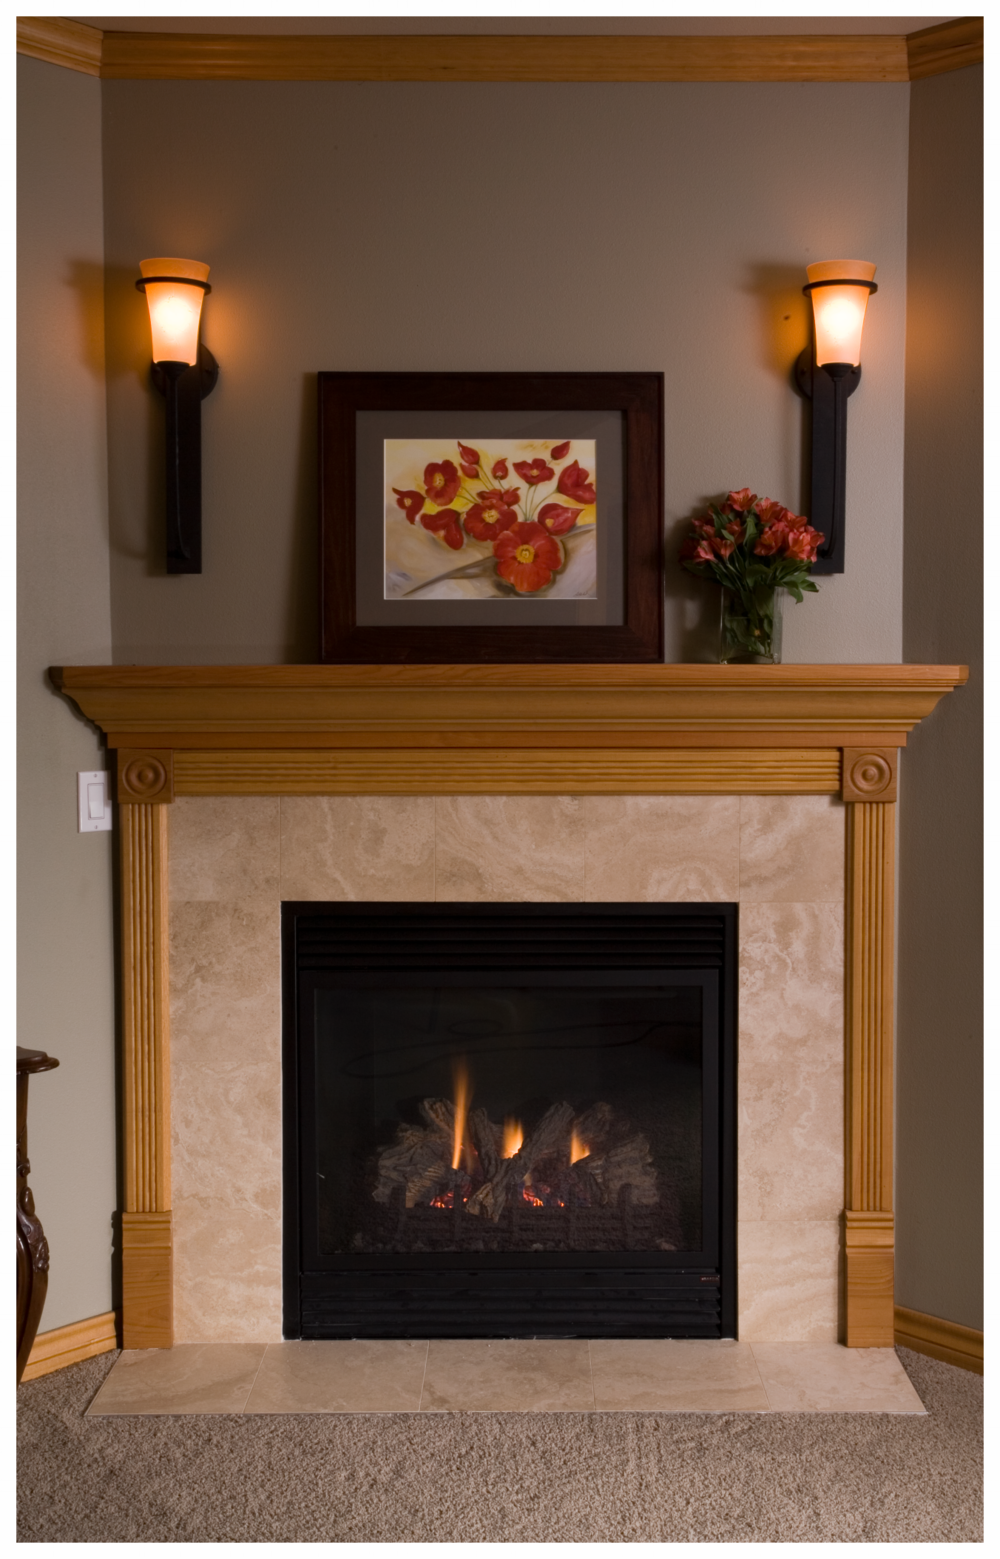 Fireplace 14.png